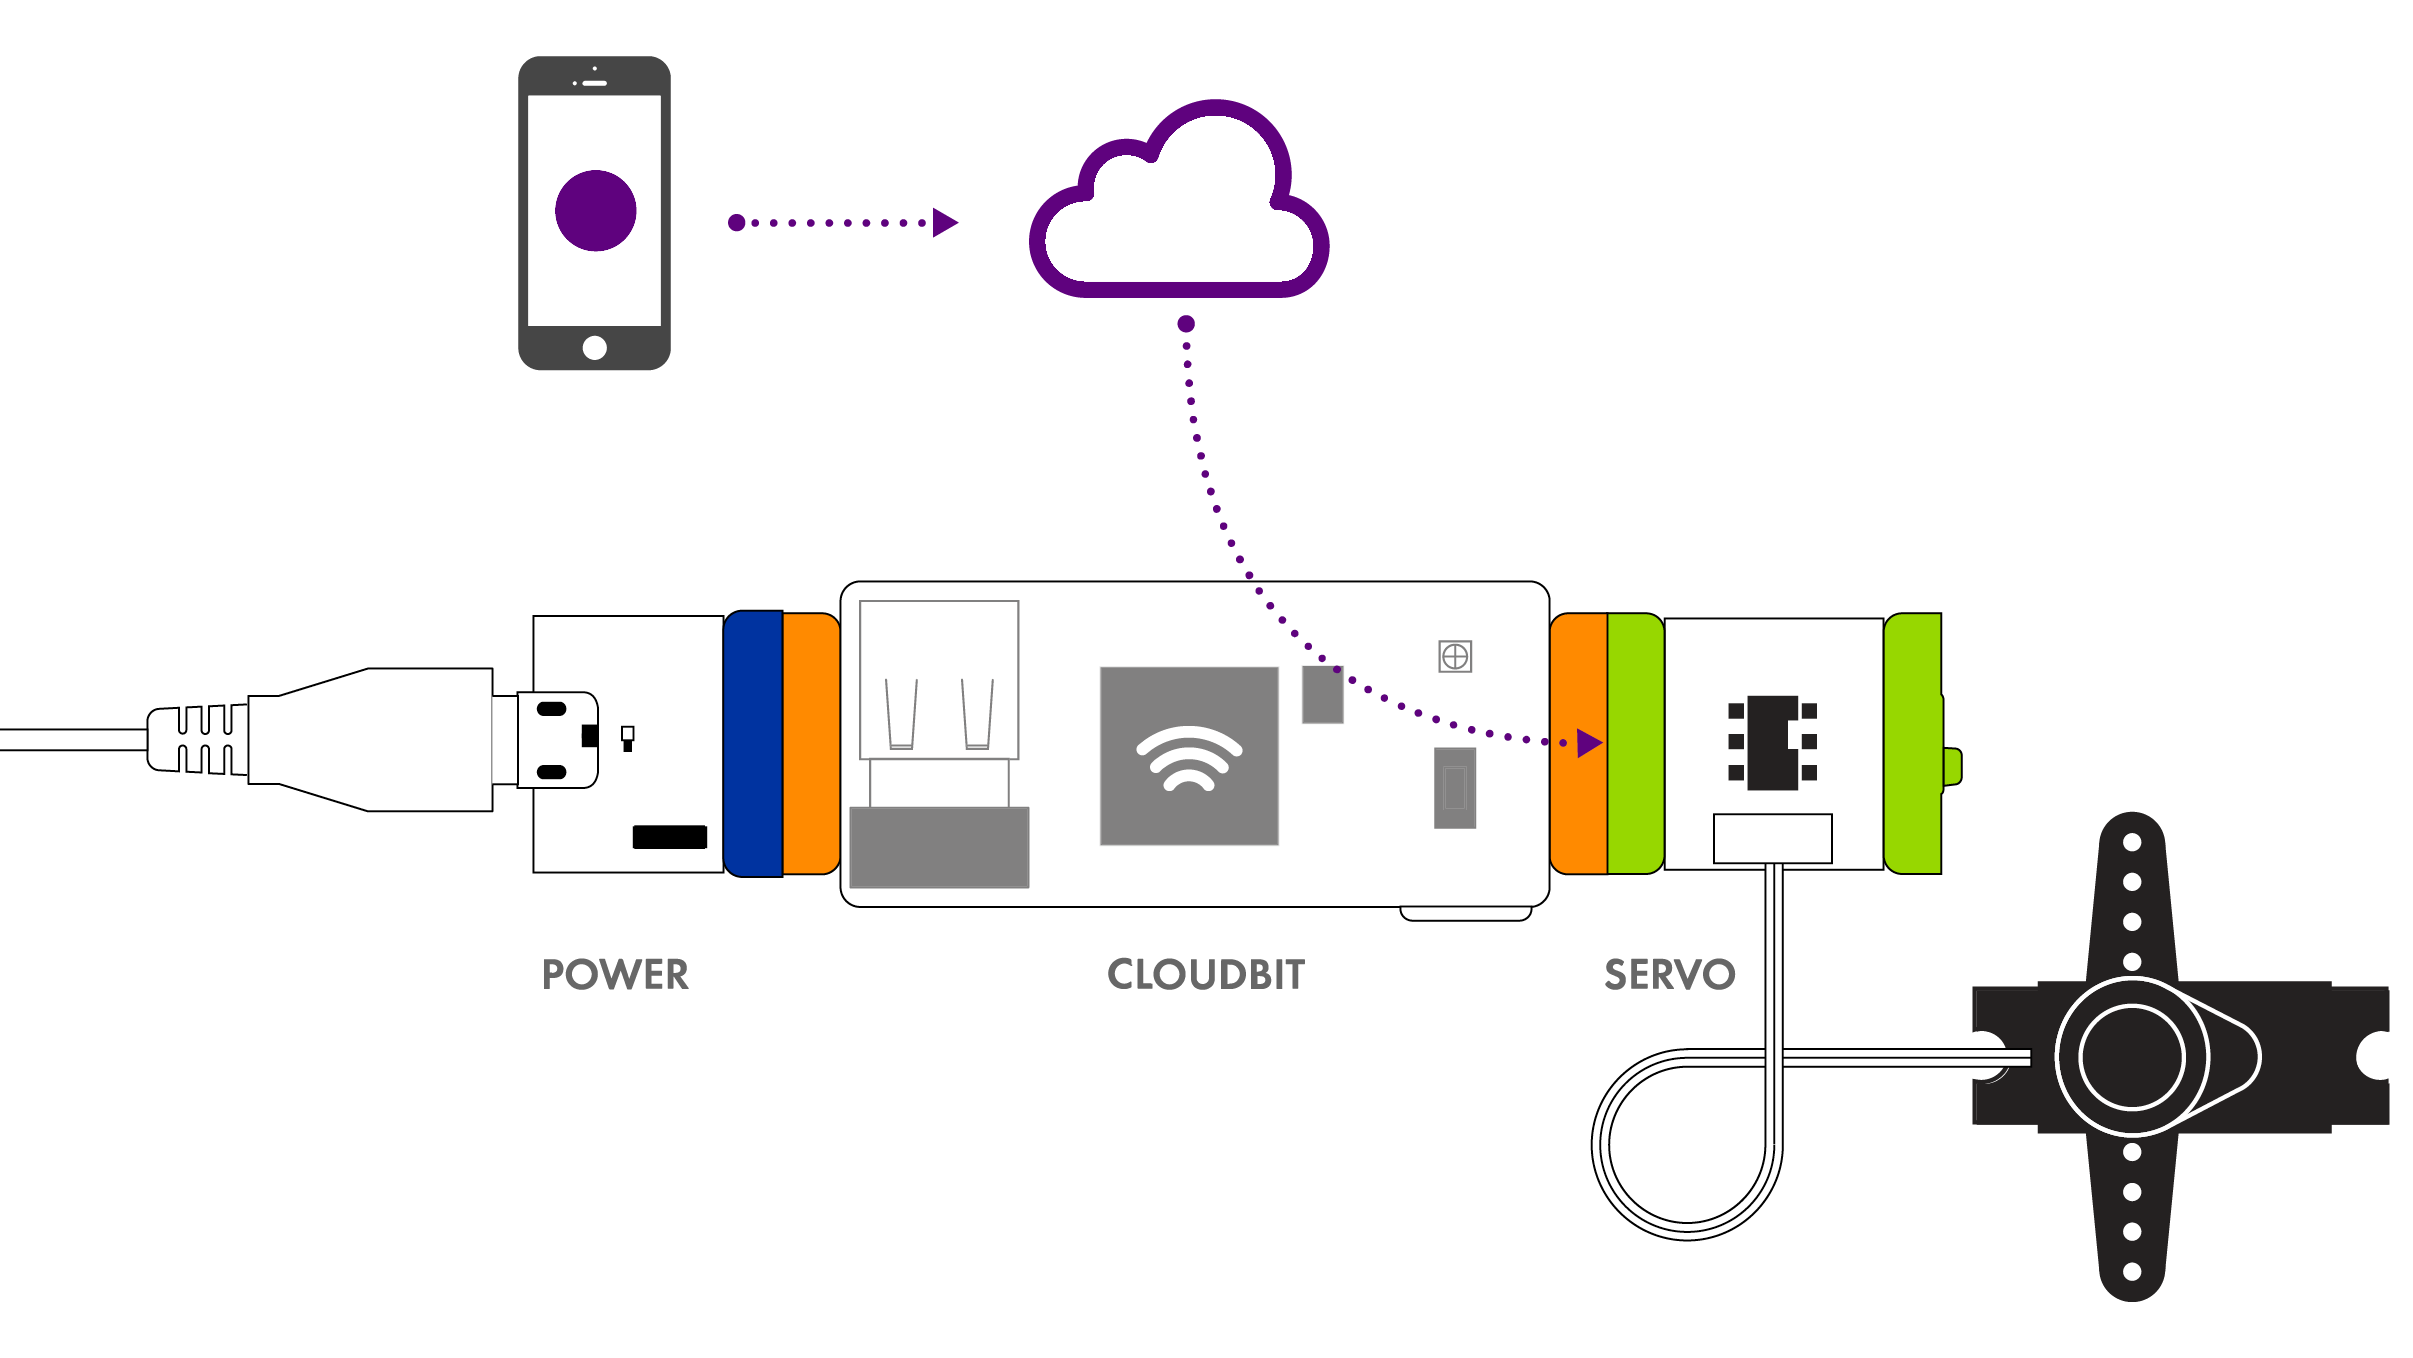 Cloudbit Littlebits Doorbell Memory Circuit Diagram The Acts As An Input By Receiving Signal From Your And Sending It To Internet This Means You Can Make A Smart That